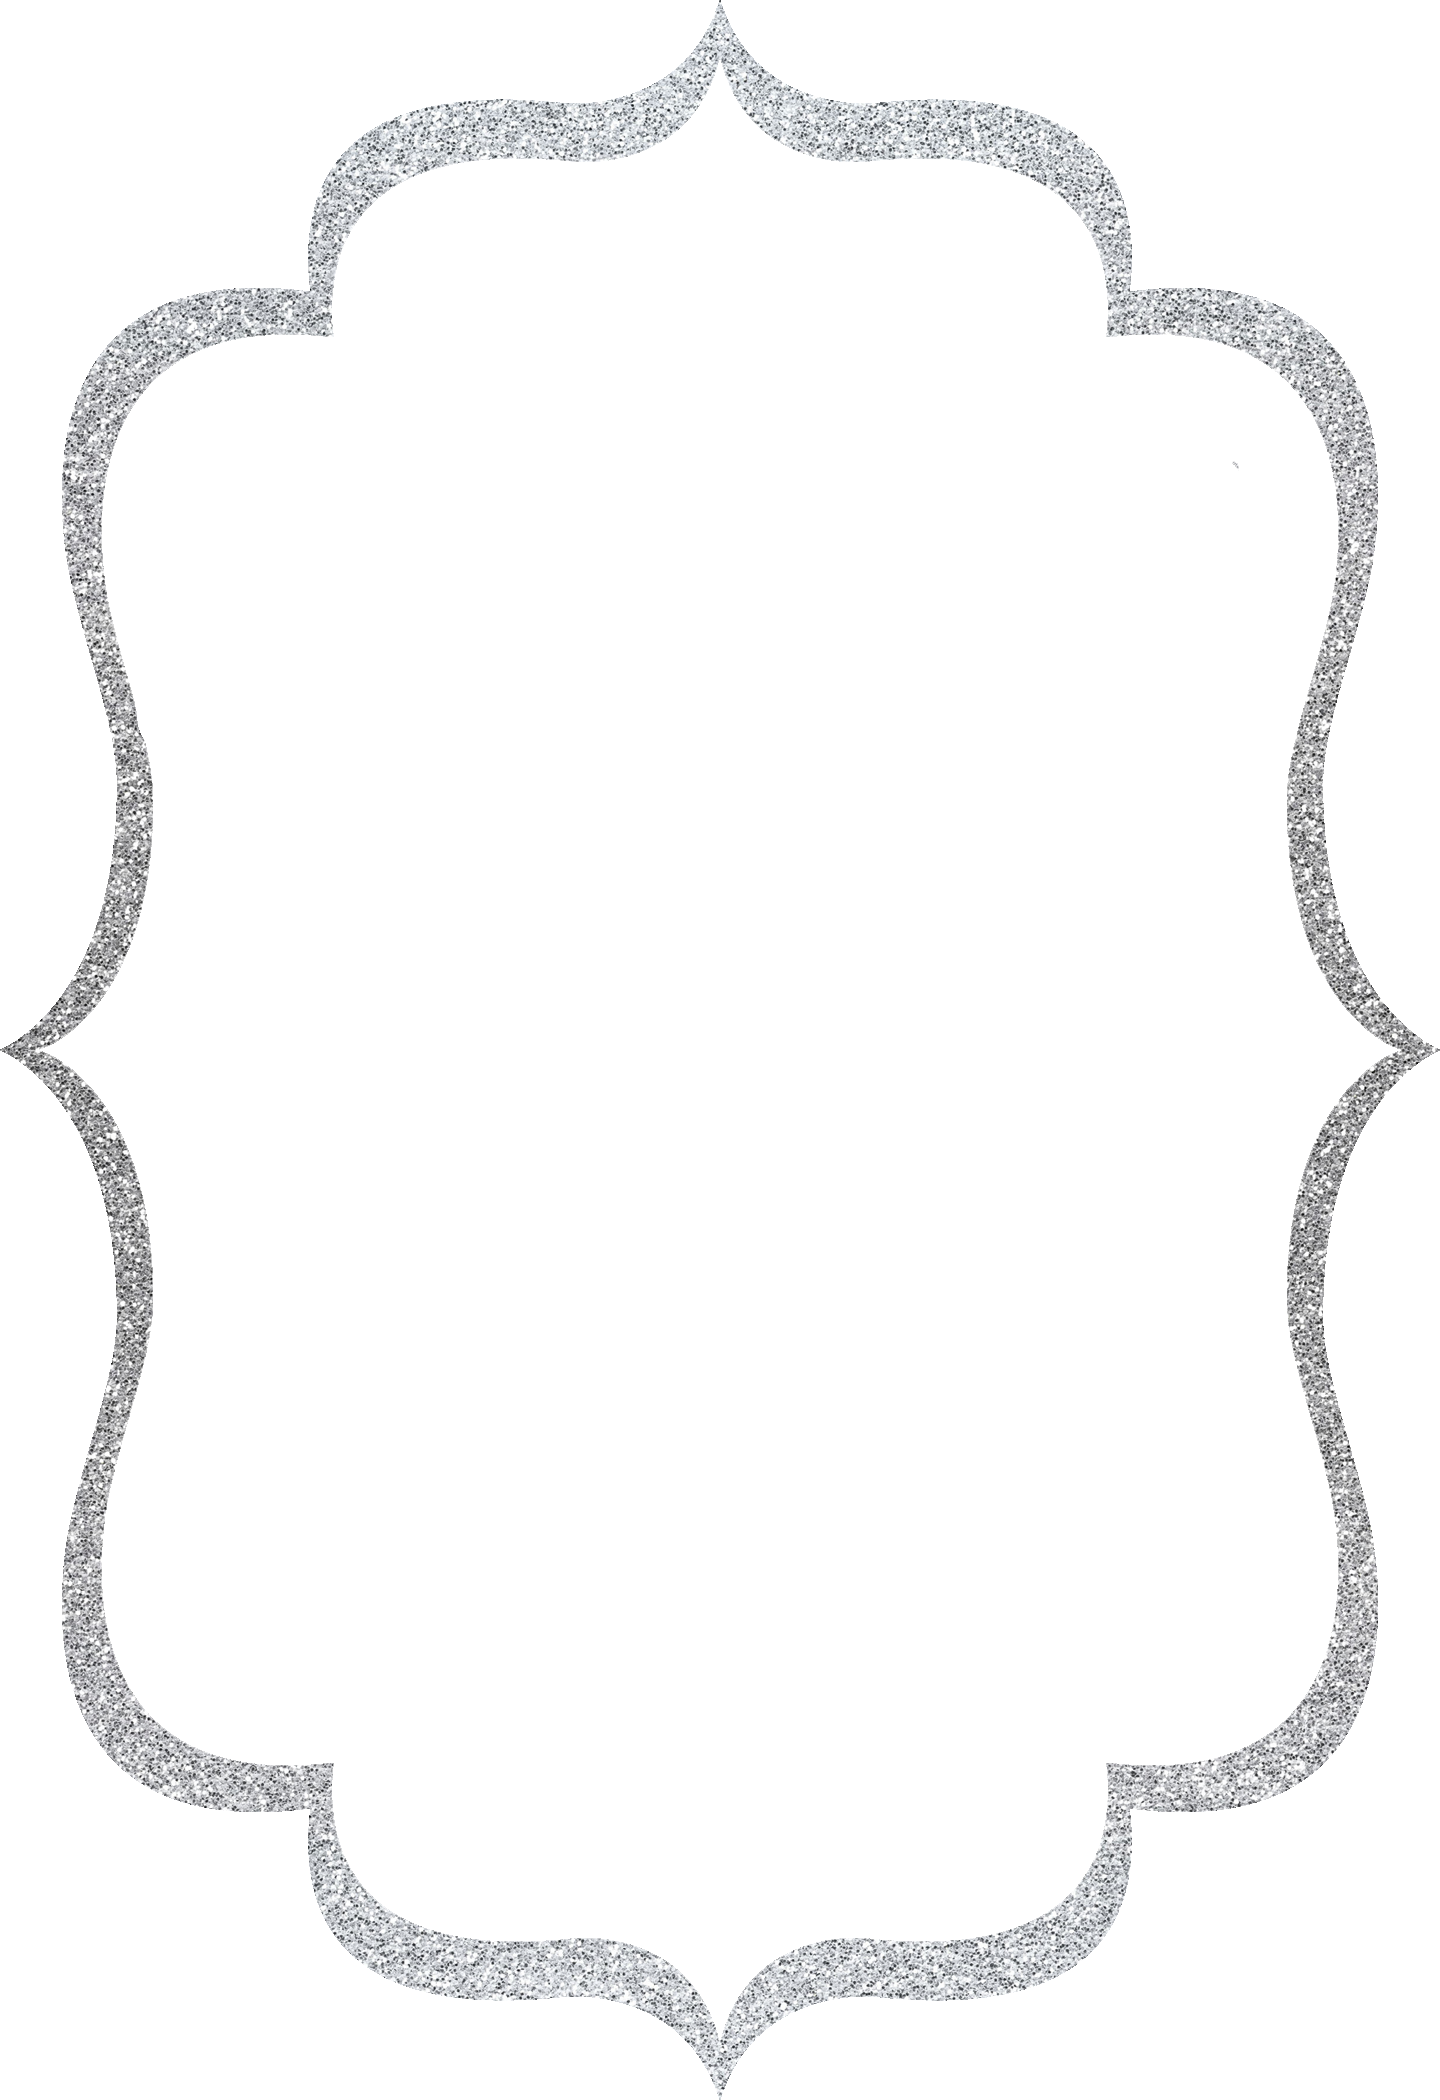 Silver Frames And Borders Transparent Pictures To Pin.